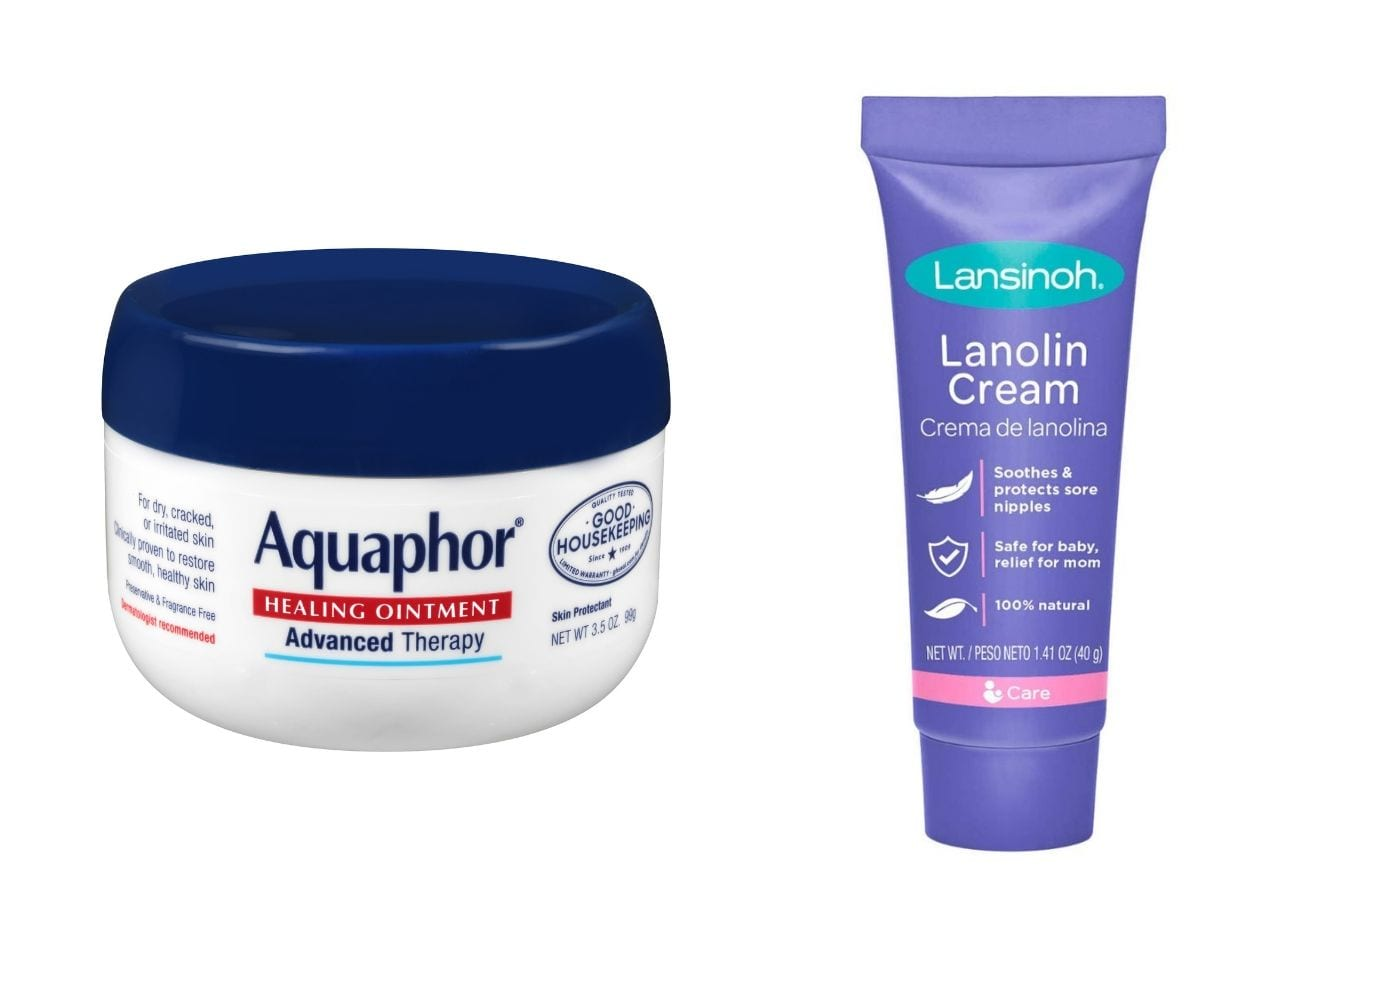 Beauty Products I Can Borrow From My Baby: Aquaphor and Lanolin Nipple Cream